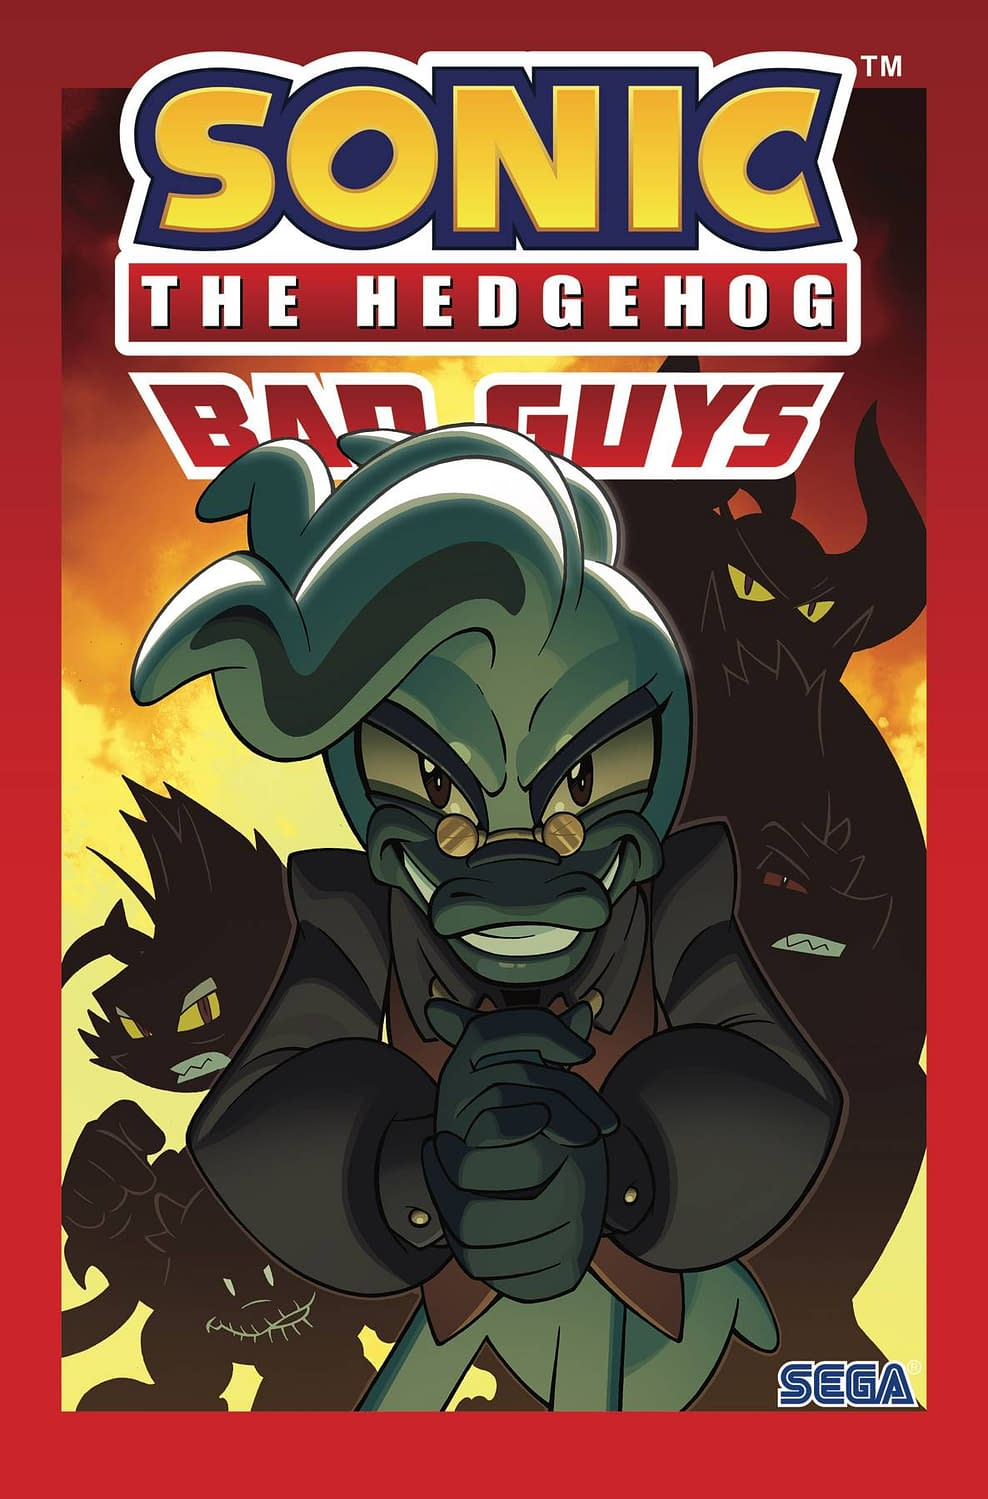 IDW SONIC THE HEDGEHOG BAD GUYS TP